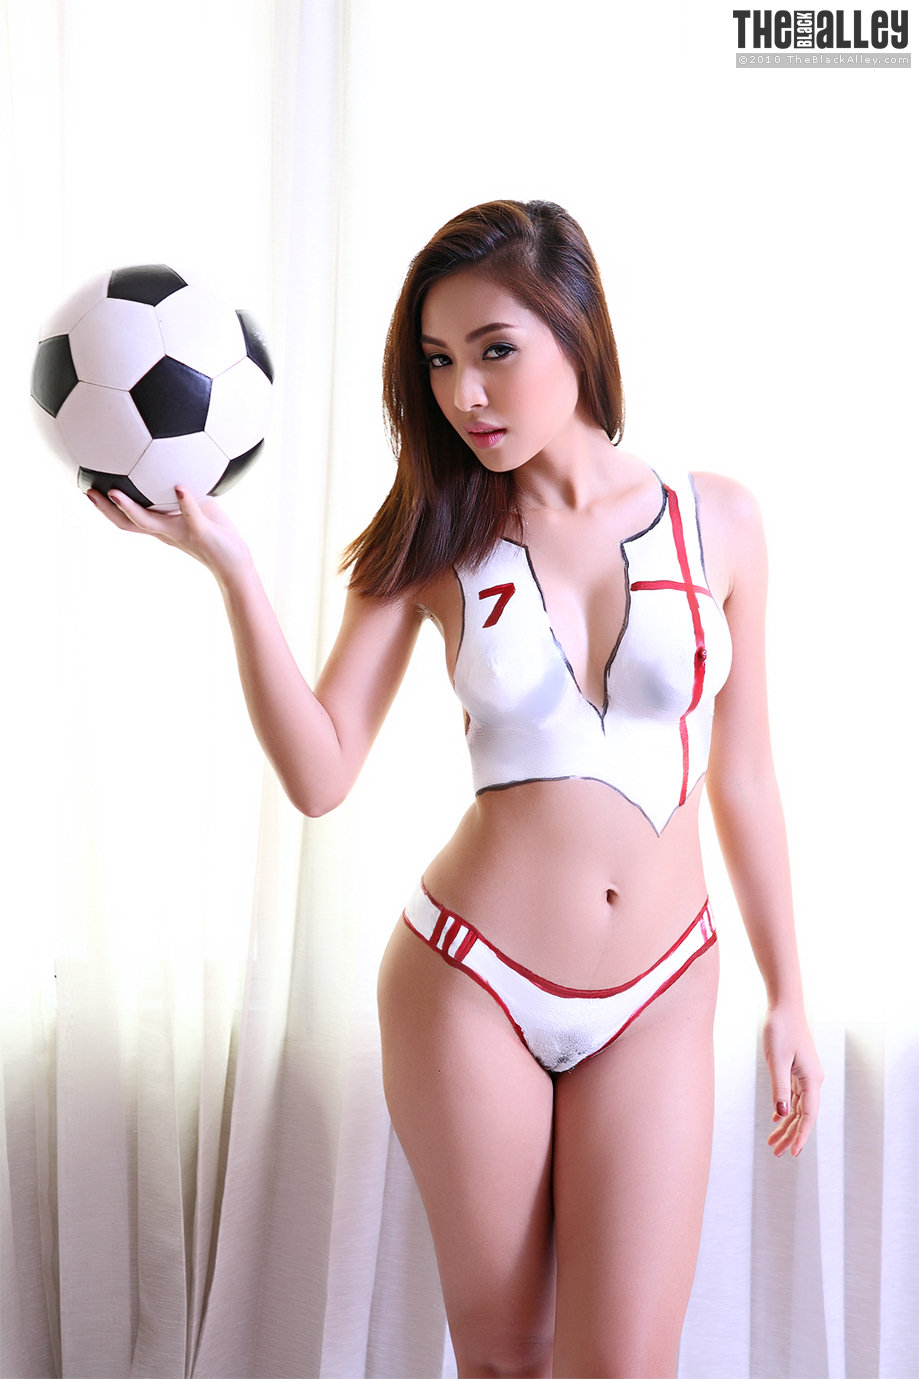 Painted football girls nude